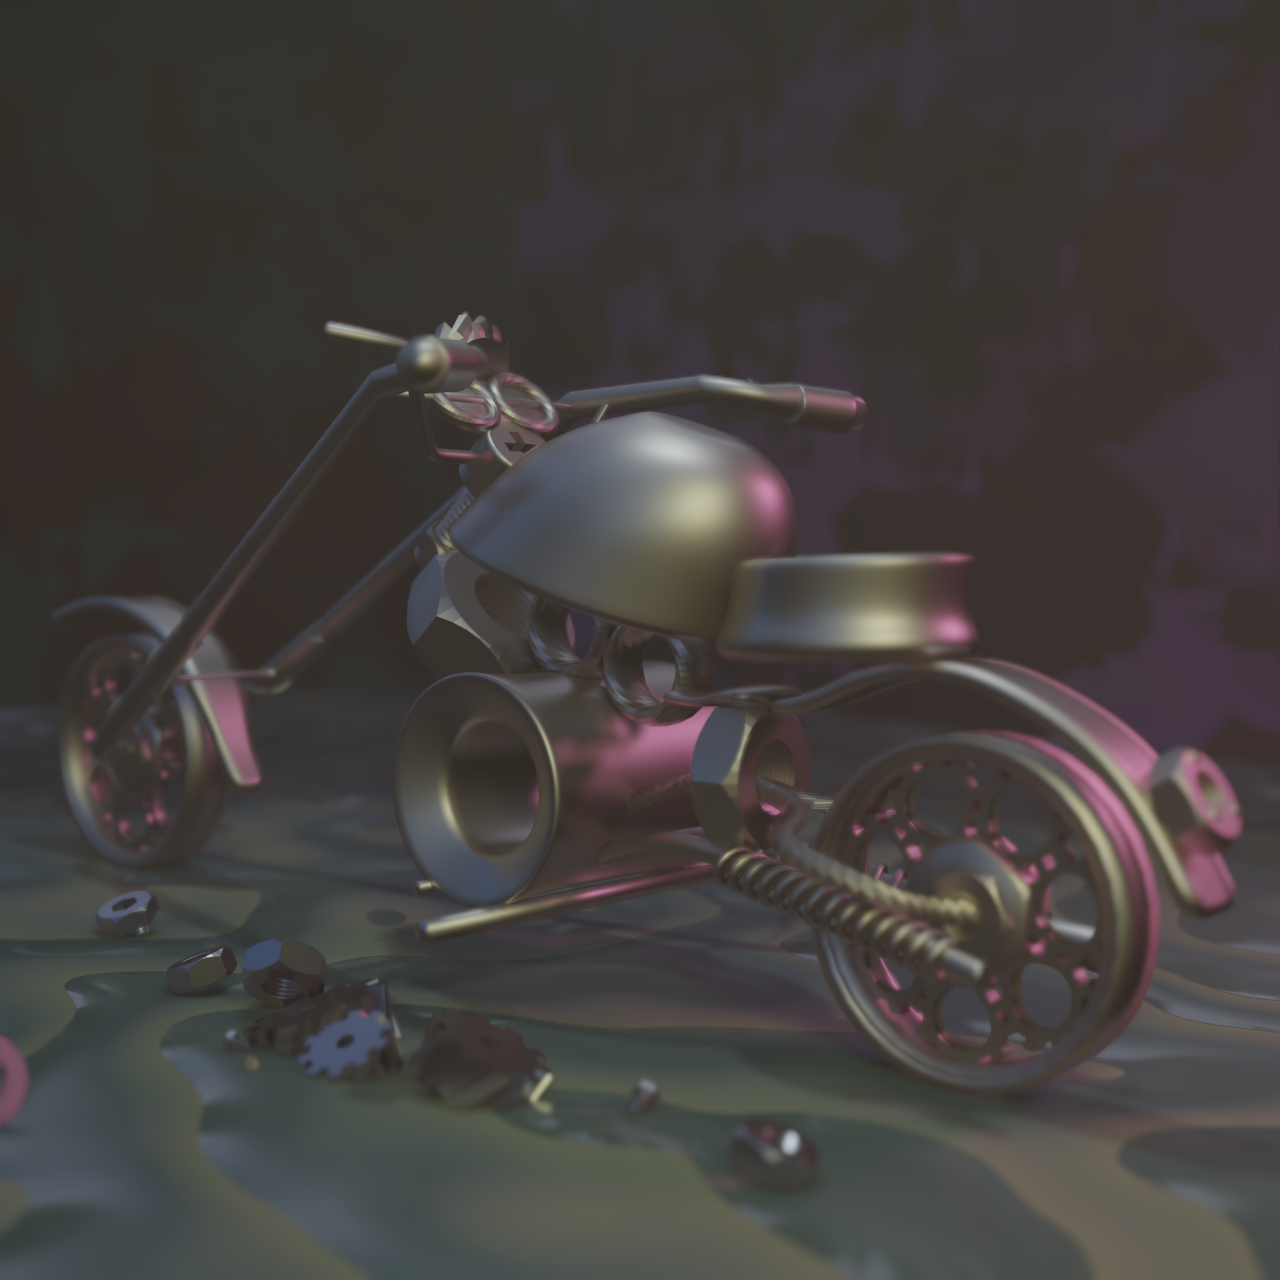 Mechanical Bike preview image 4